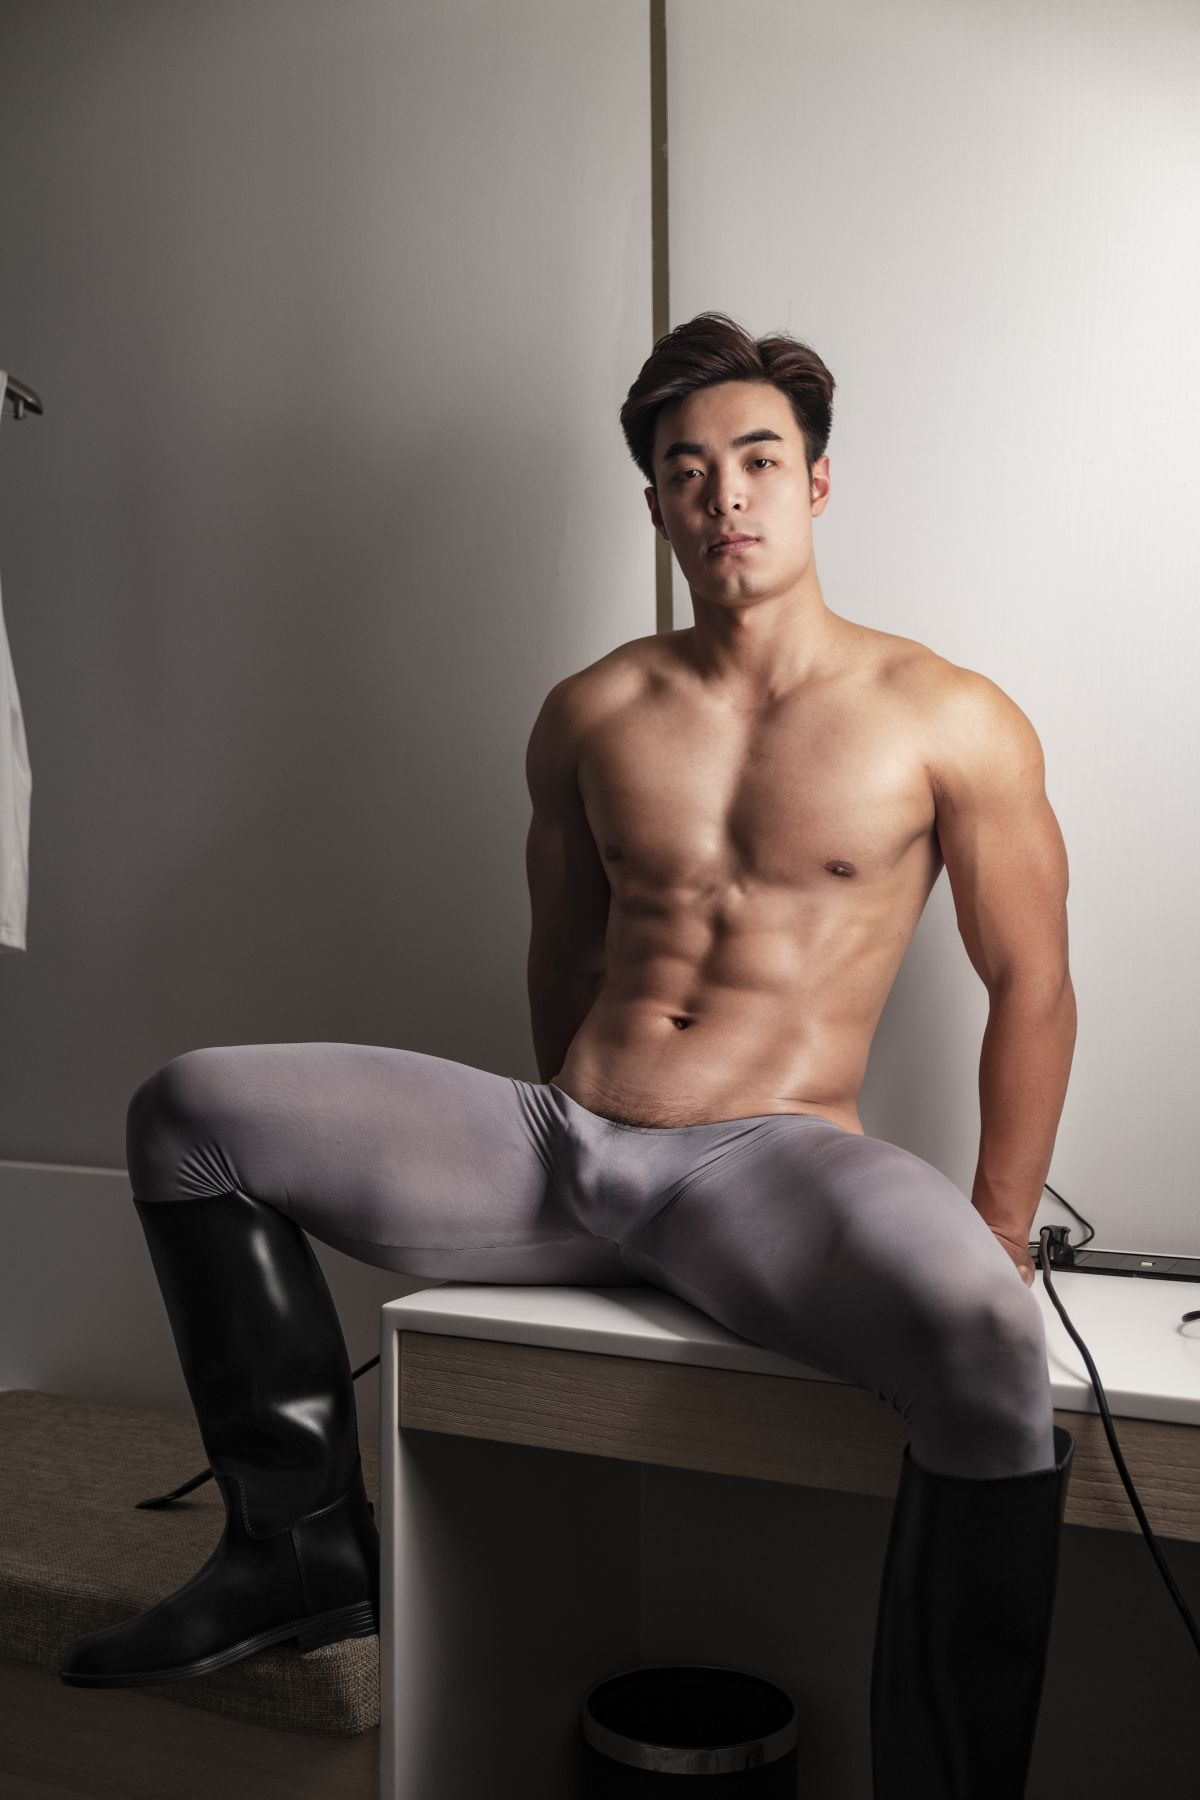 Free nudes of Skiinmode onlyfans leaked